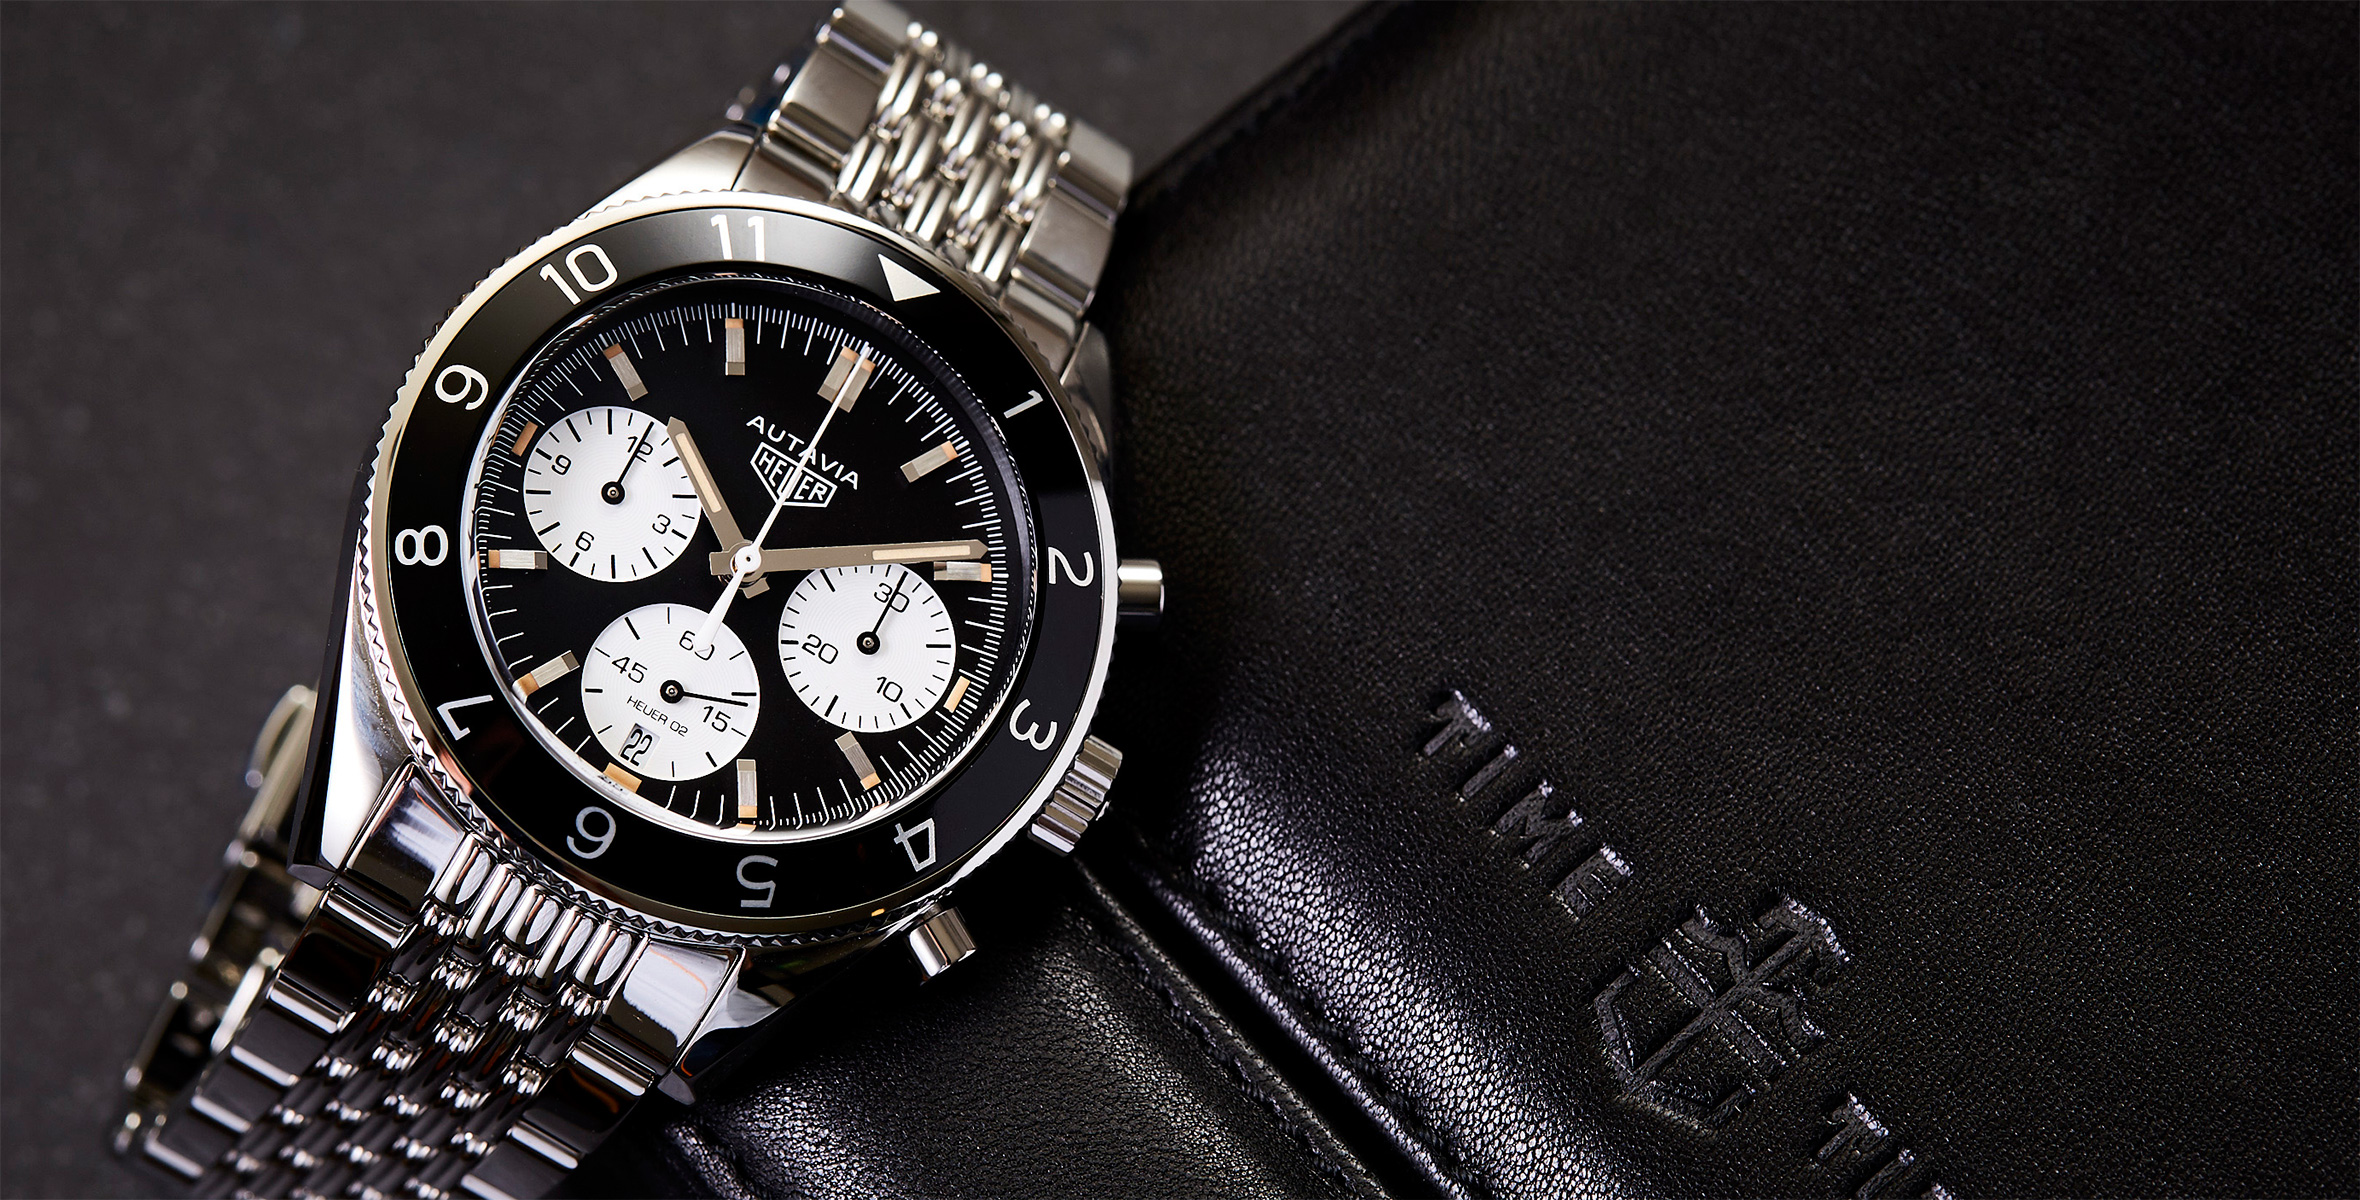 ANNOUNCING: We are selling 10 TAG Heuer Autavias with Collector's Pack and exclusive event, launching Monday